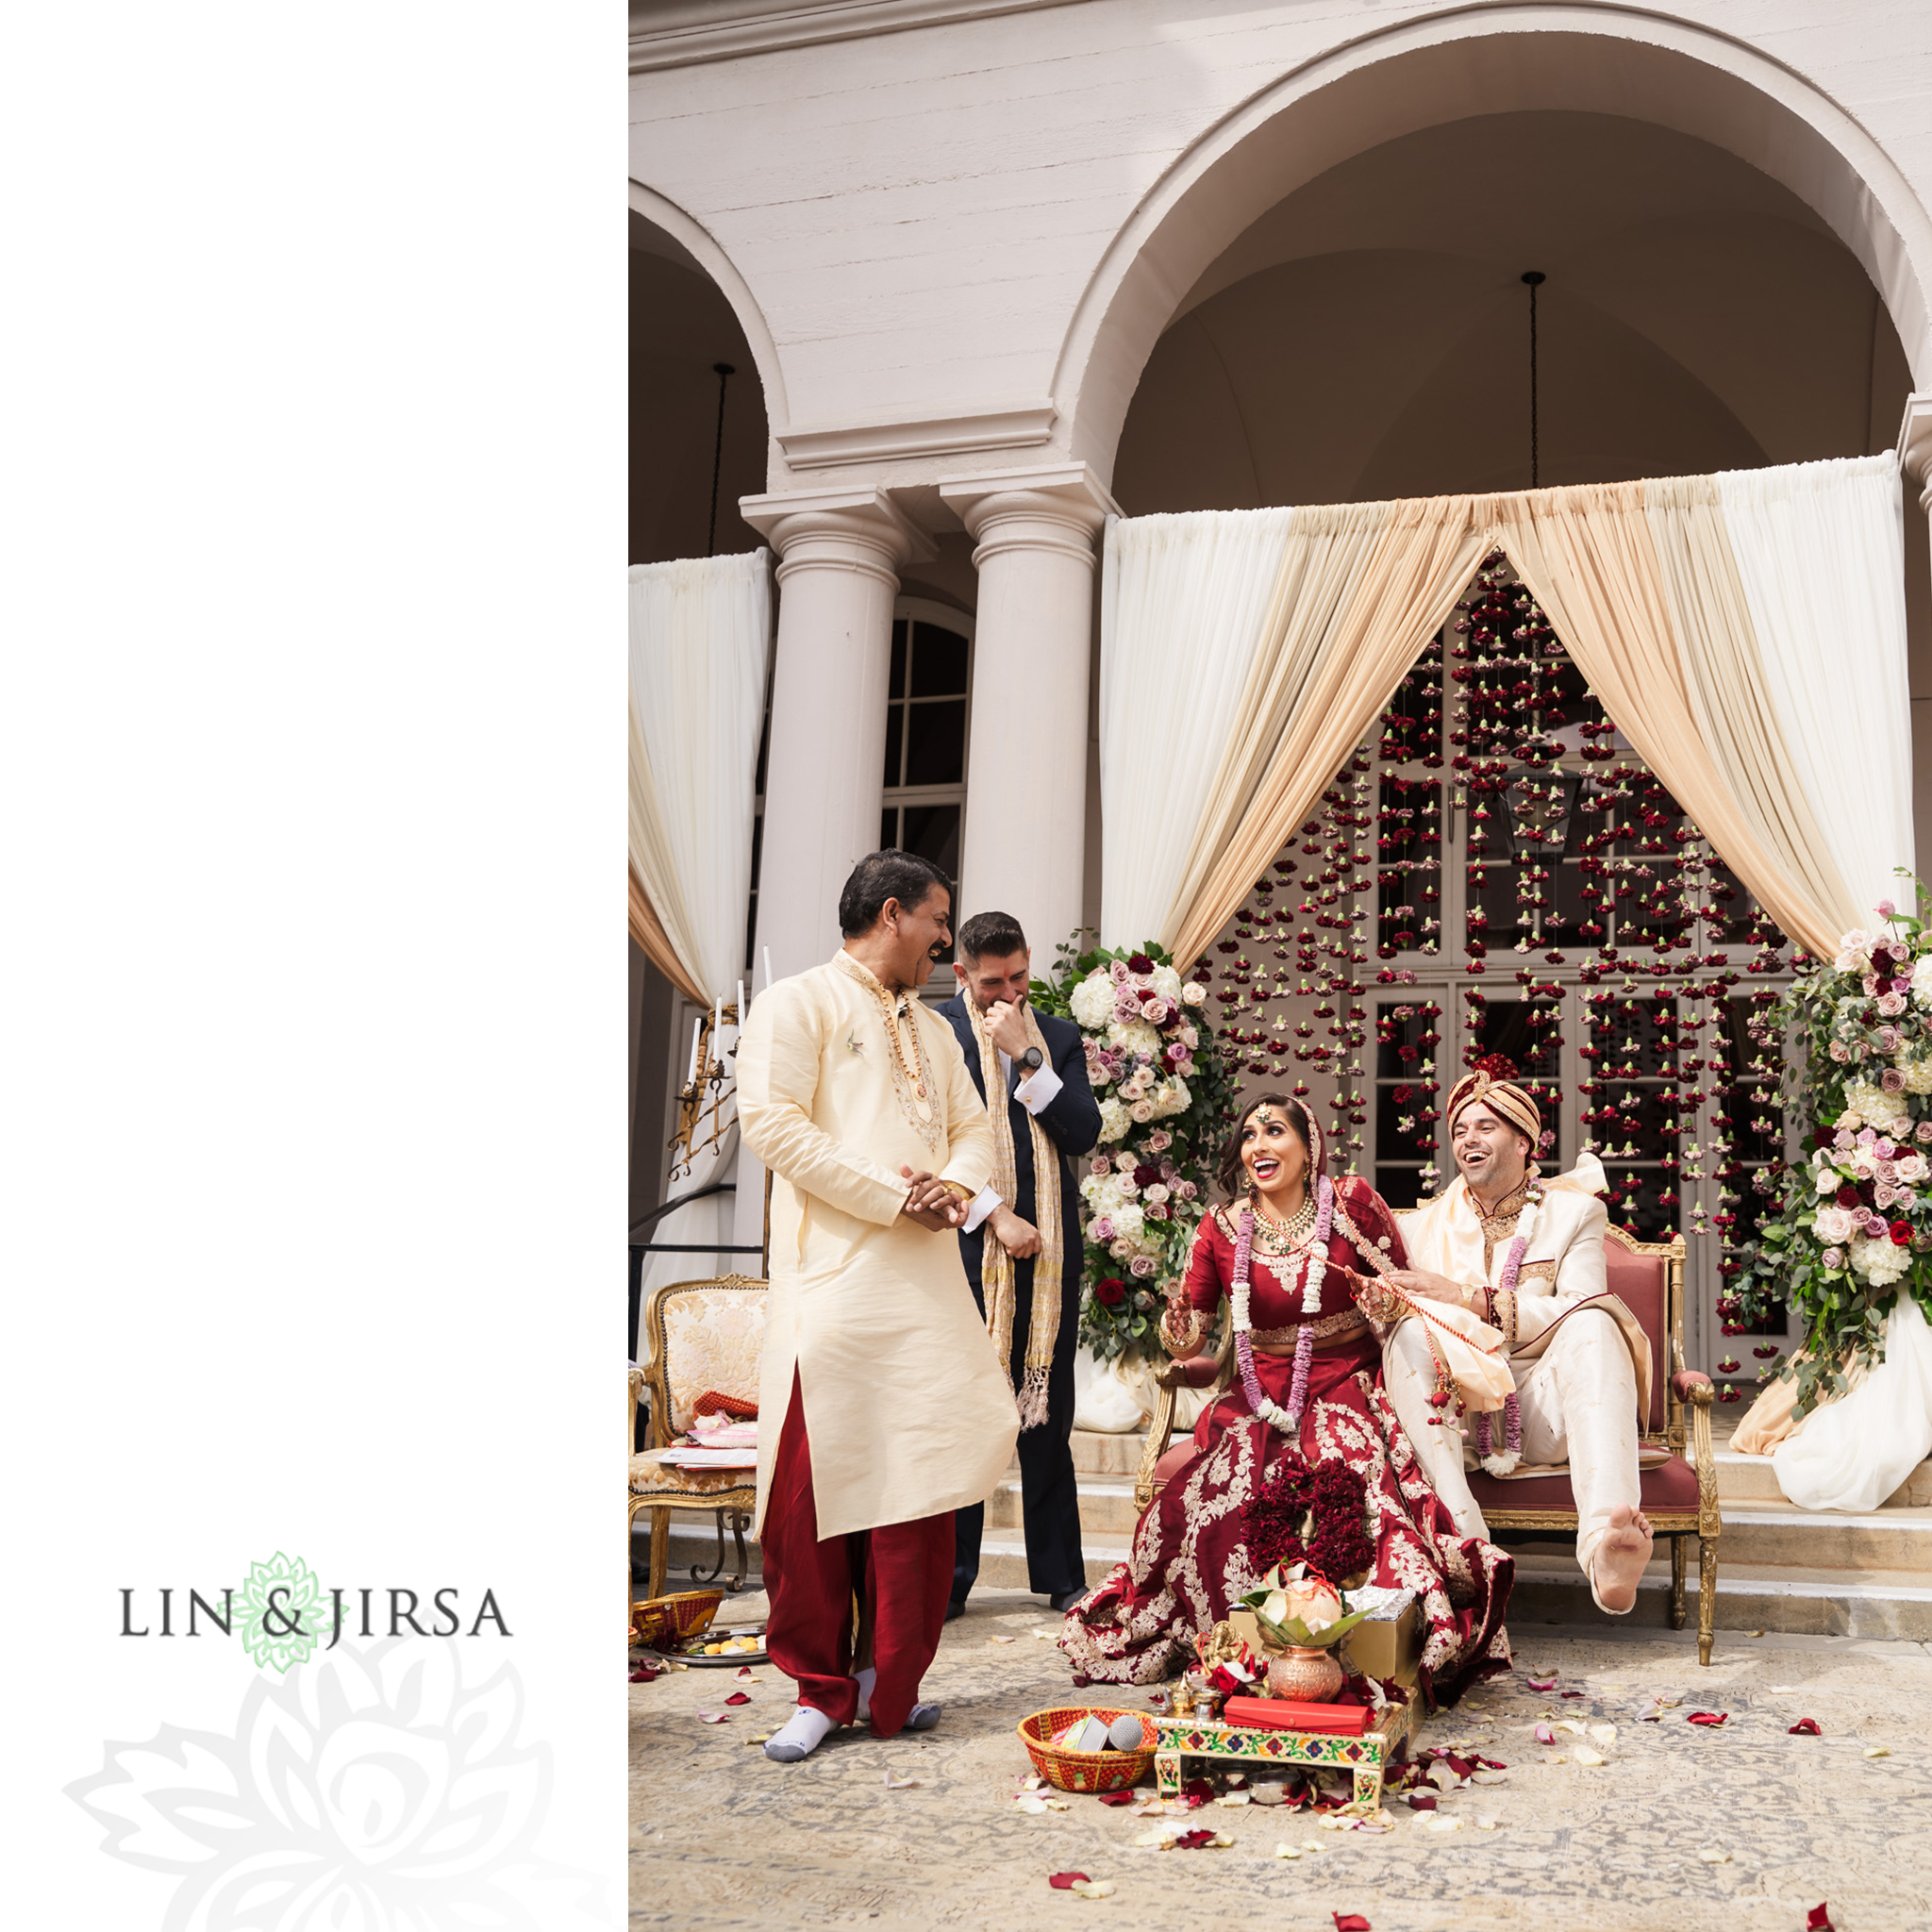 24 The Ebell Los Angeles Indian Wedding Ceremony Photography